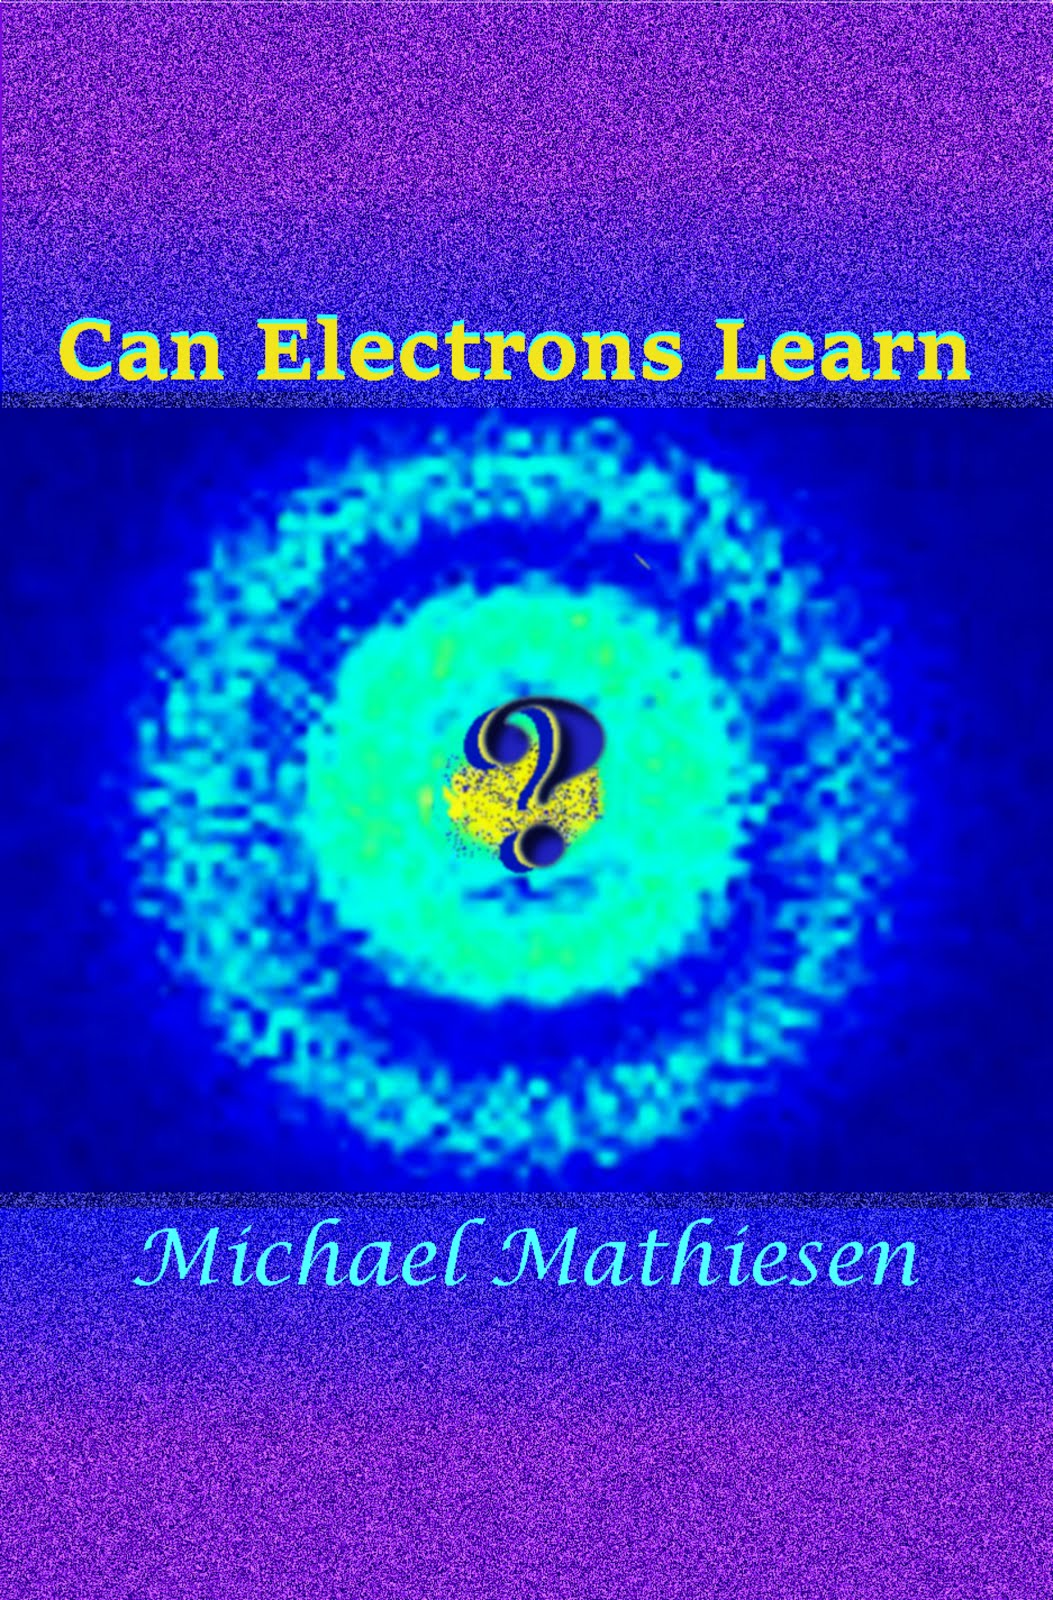 Can Electrons Learn?